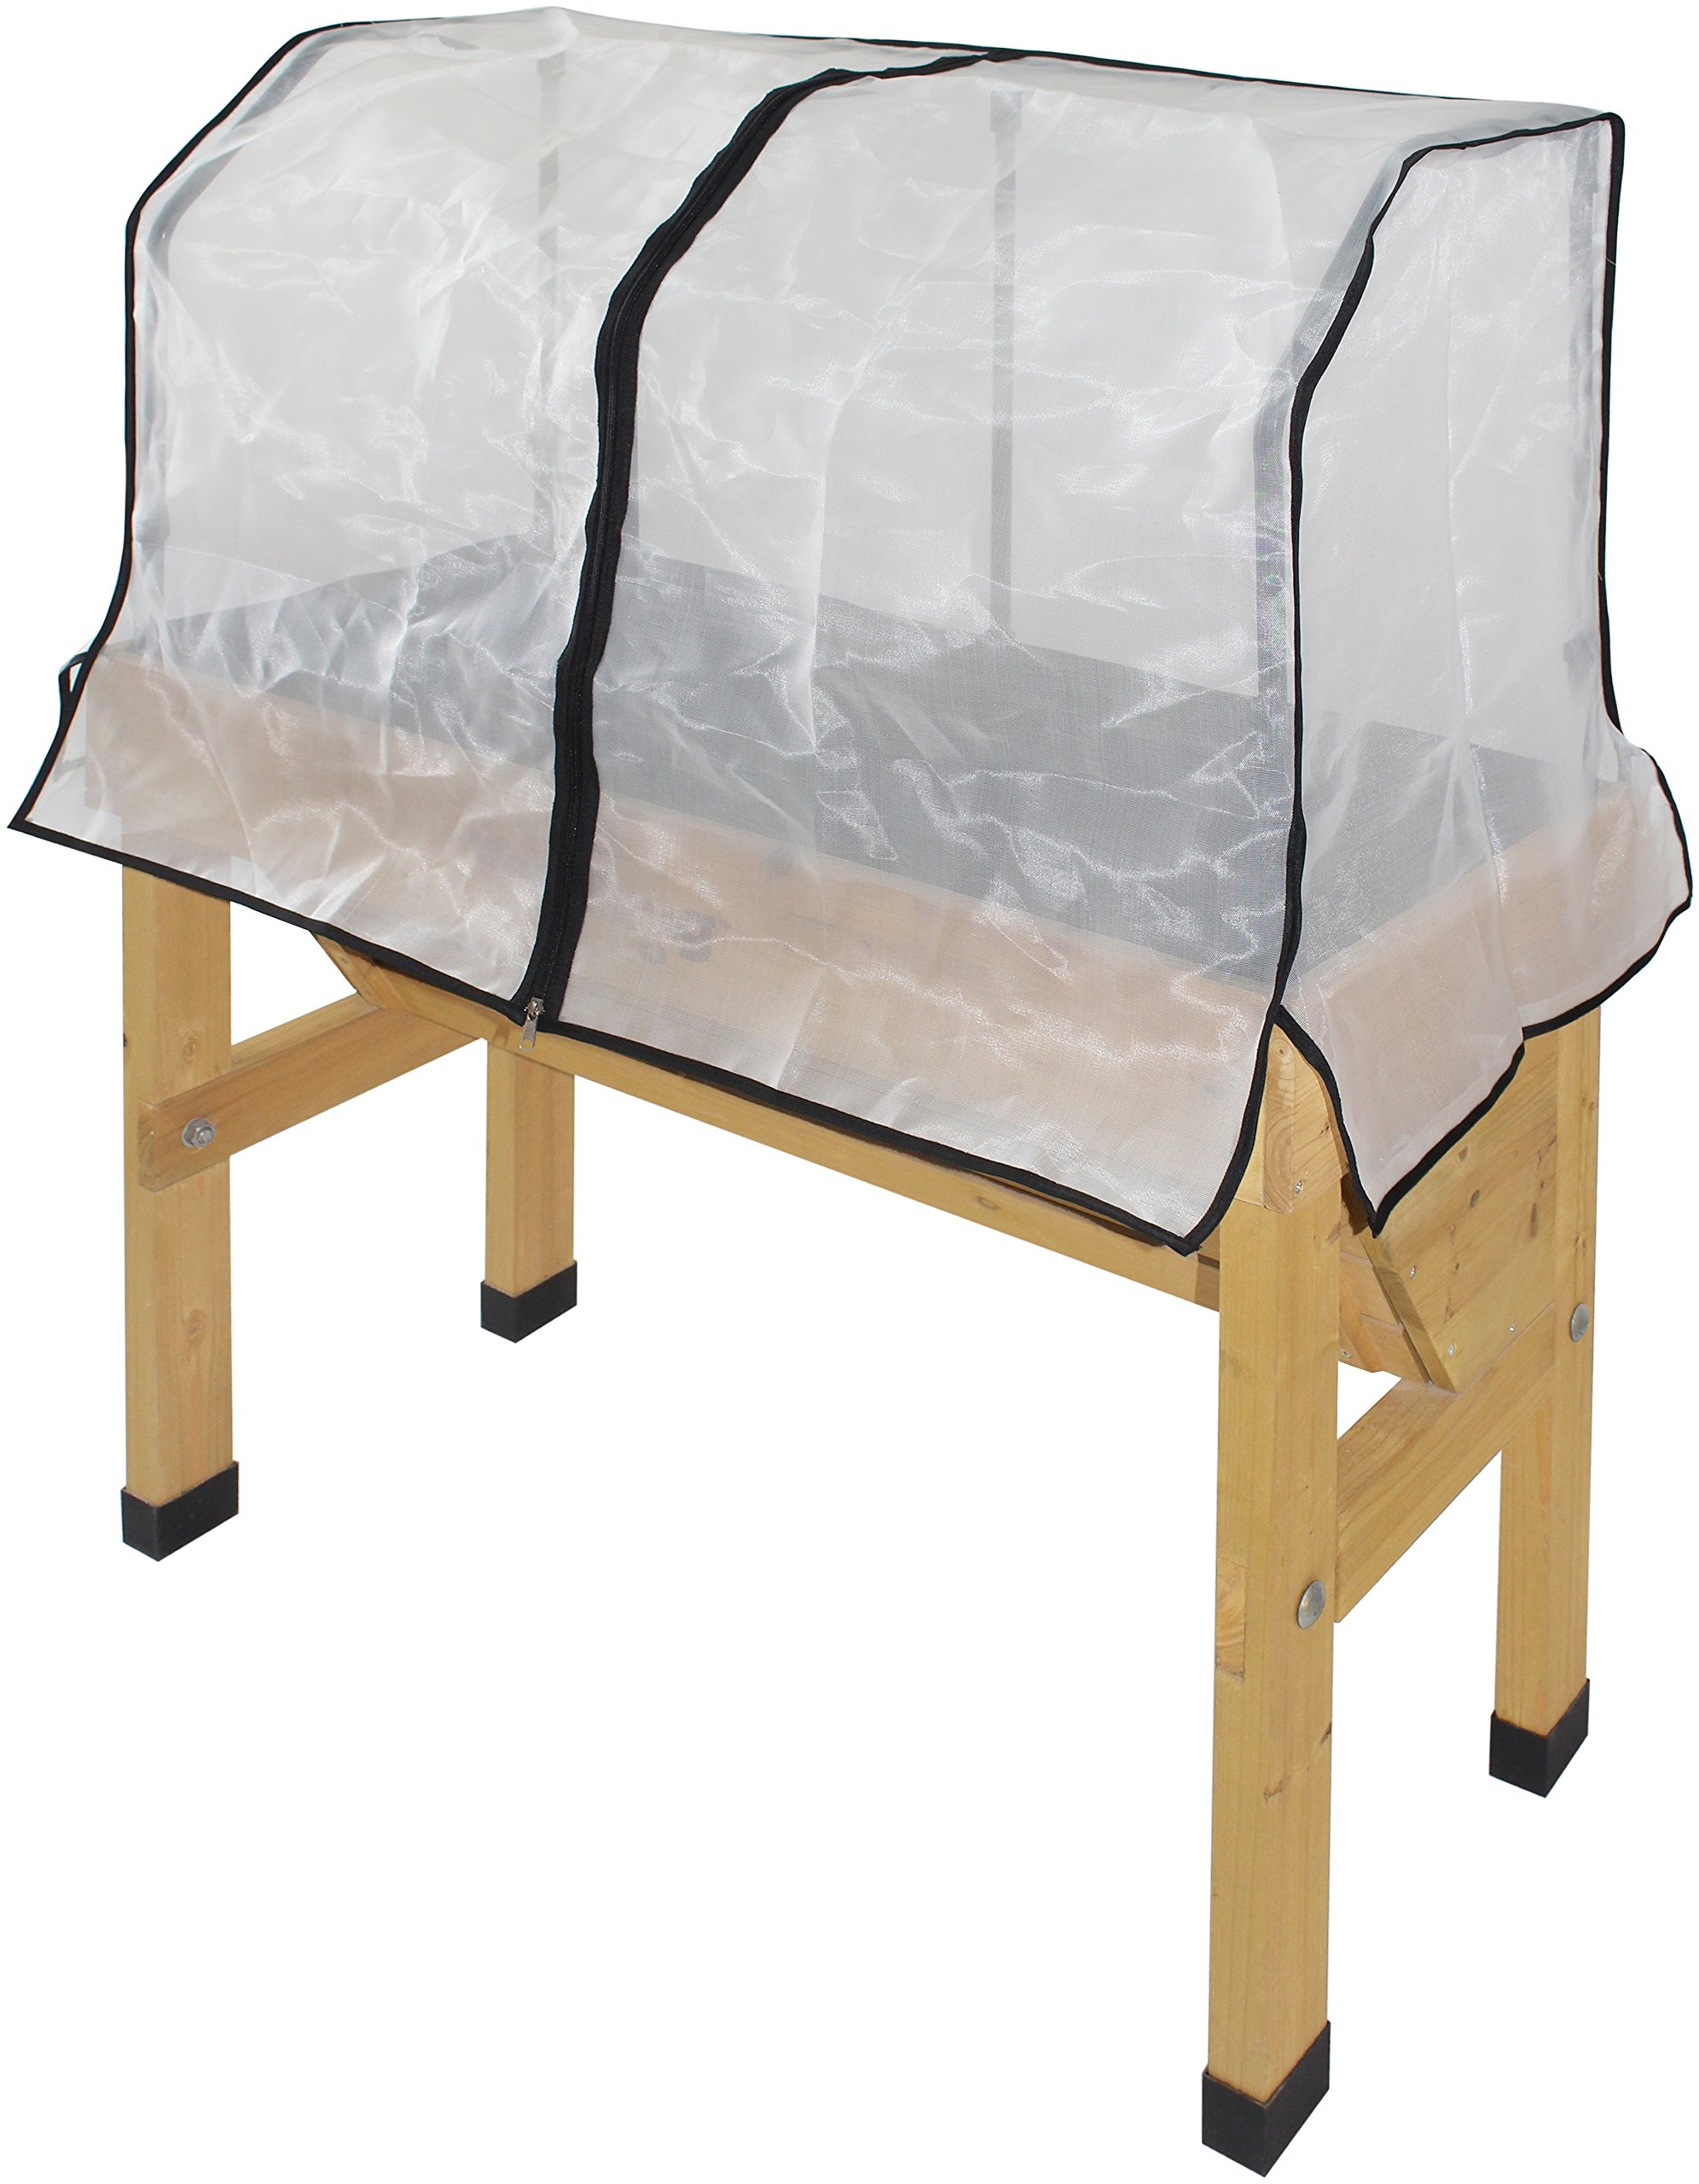 VegTrug SGMMC 1139 USA Small Greenhouse Micromesh Cover (Frame Not Included)